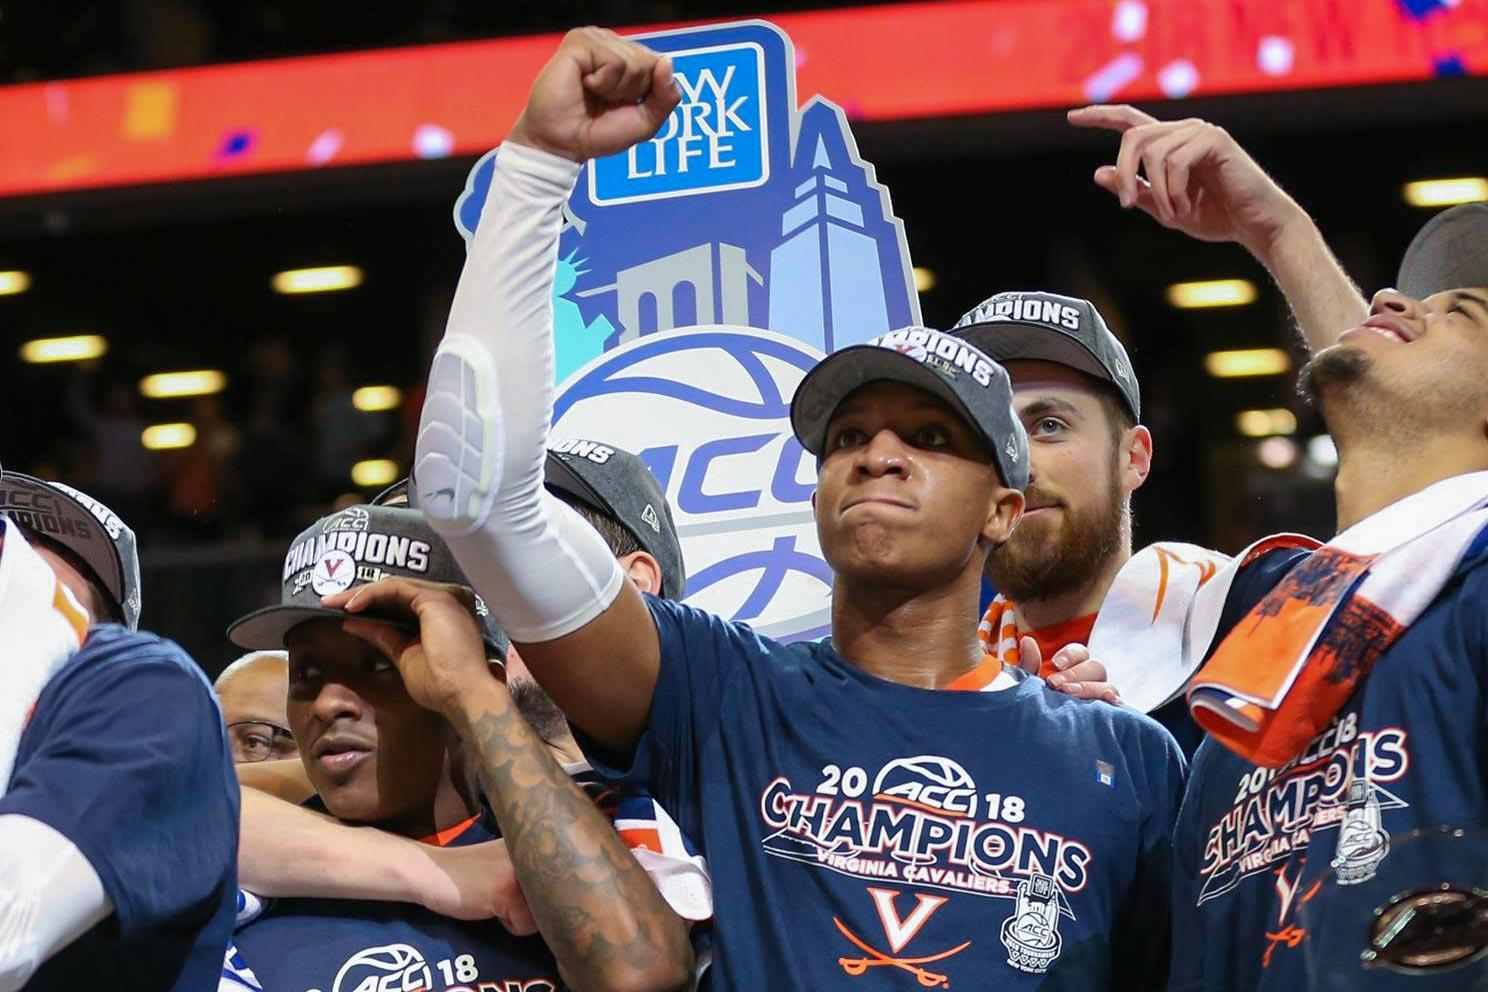 With UVA's third ACC Tournament championship in hand, the Cavaliers say they still have higher goals in mind as the enter the NCAA Tournament.